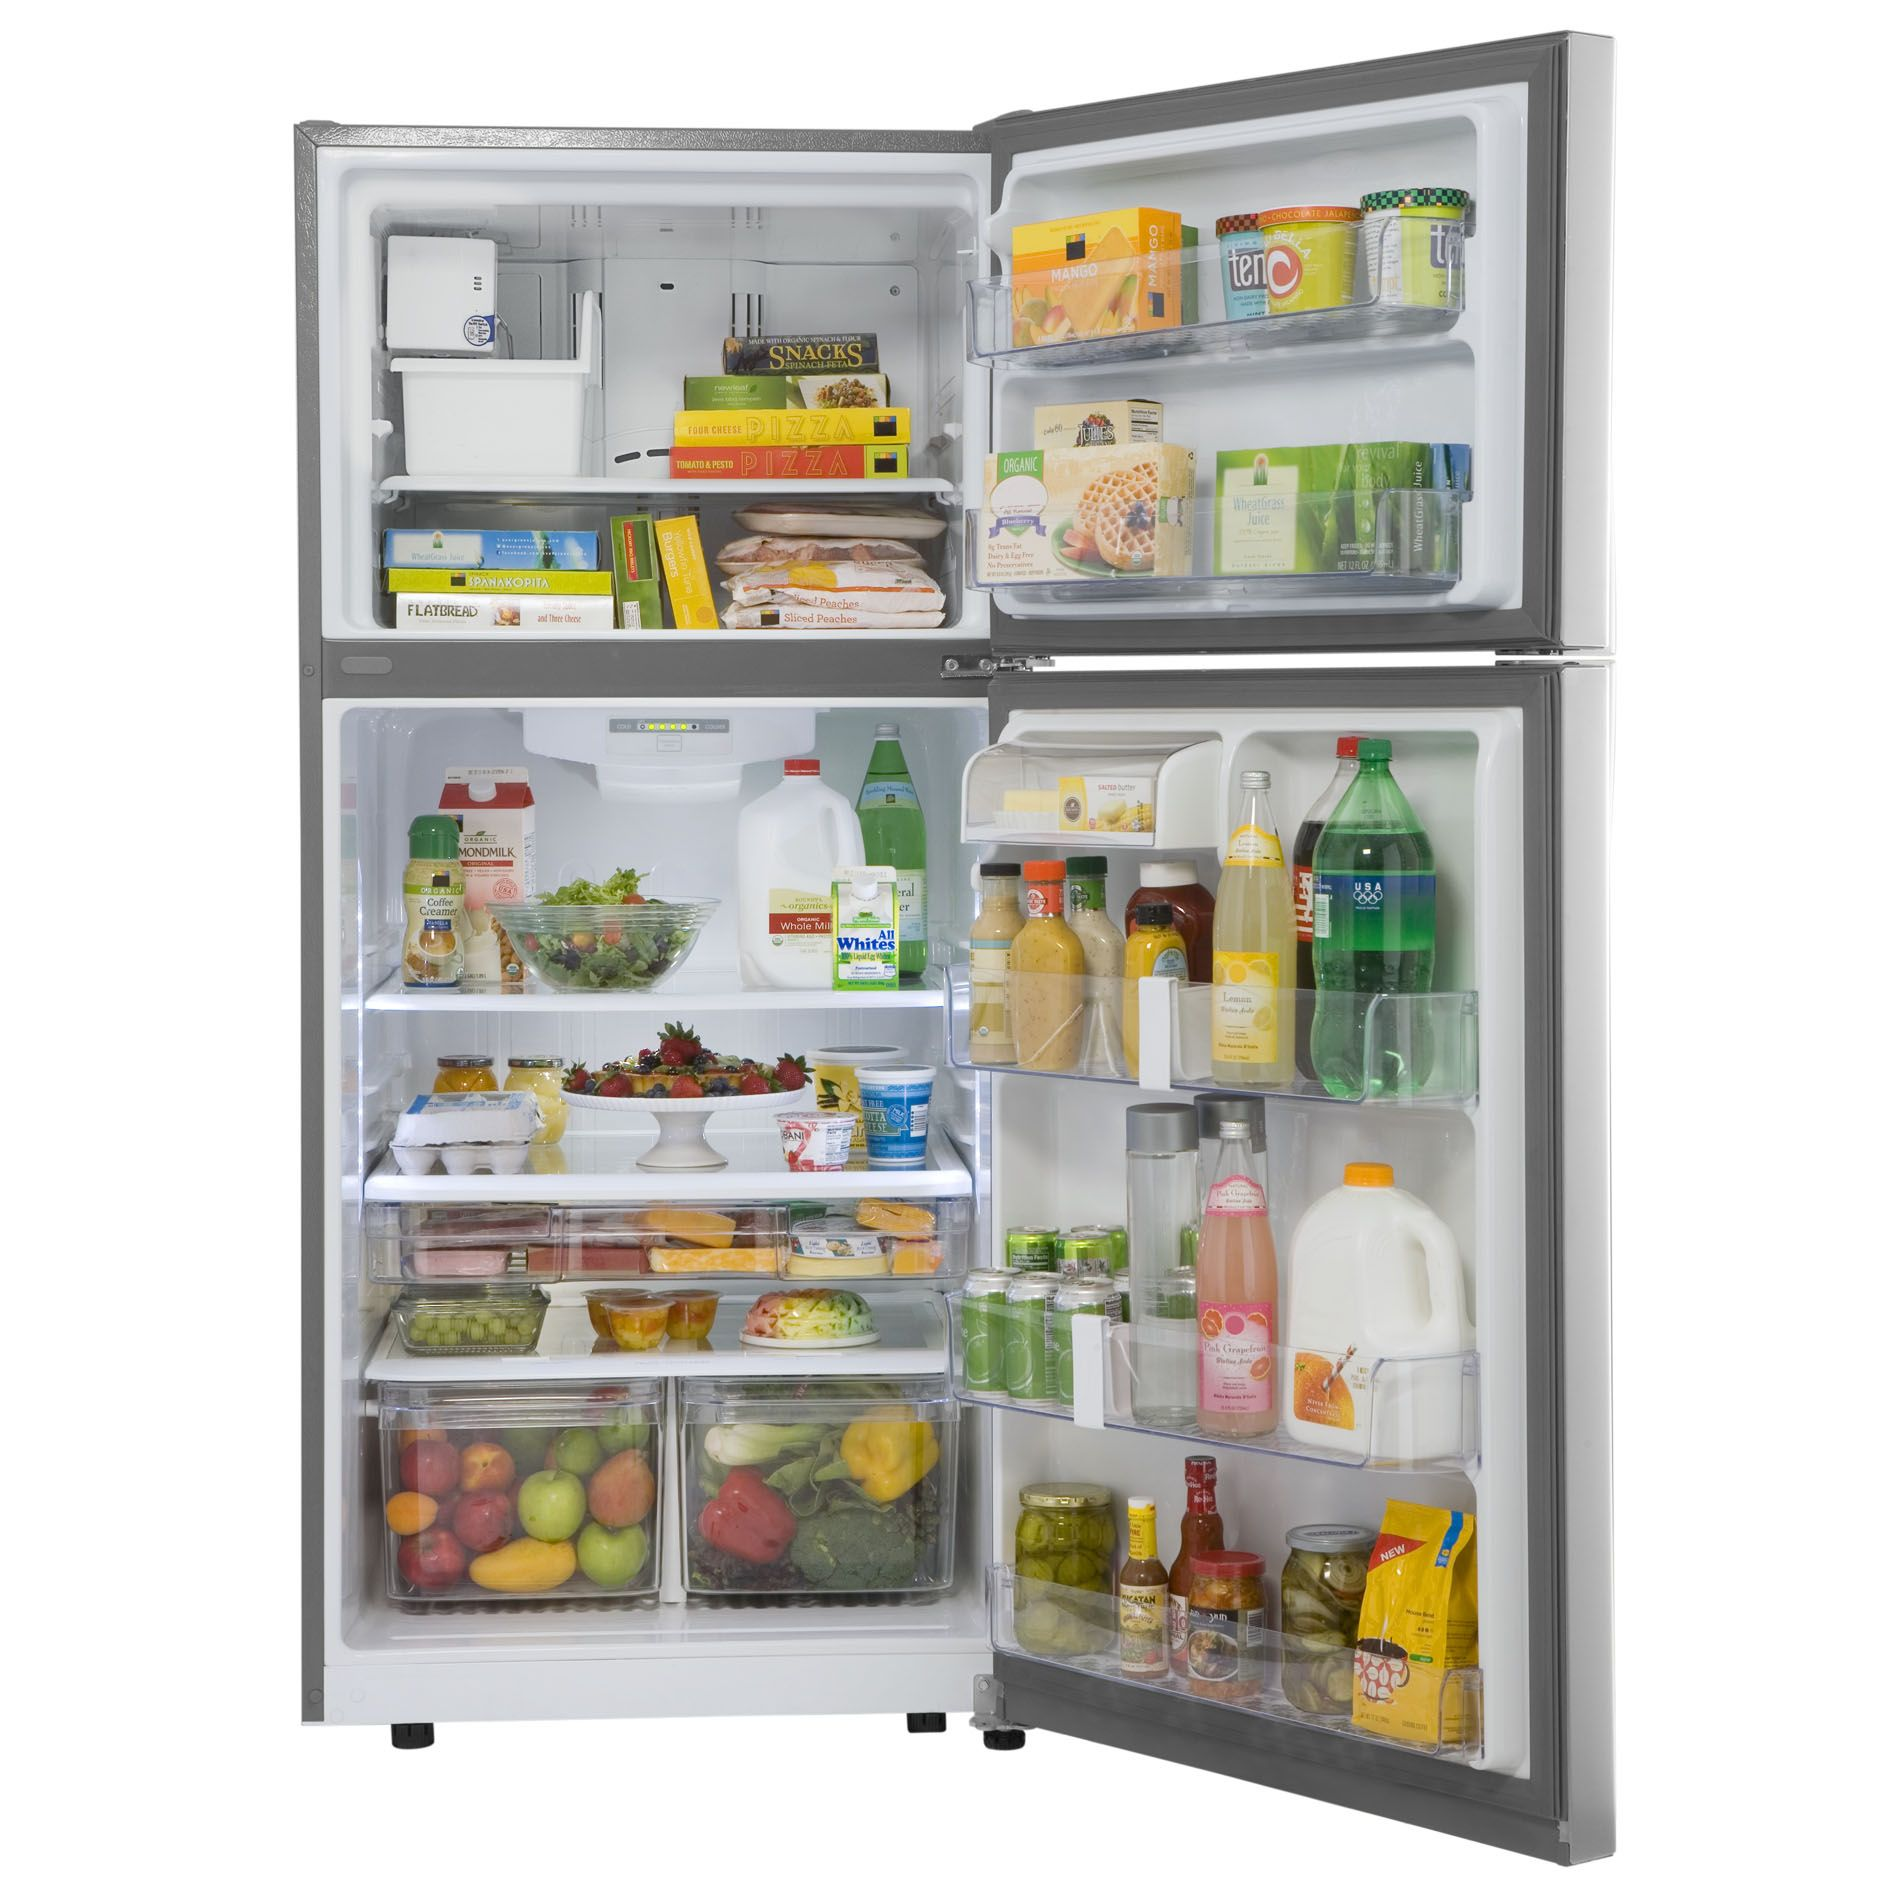 Kenmore 20 cu. ft. Stainless Steel Top-Freezer Refrigerator with Icemaker